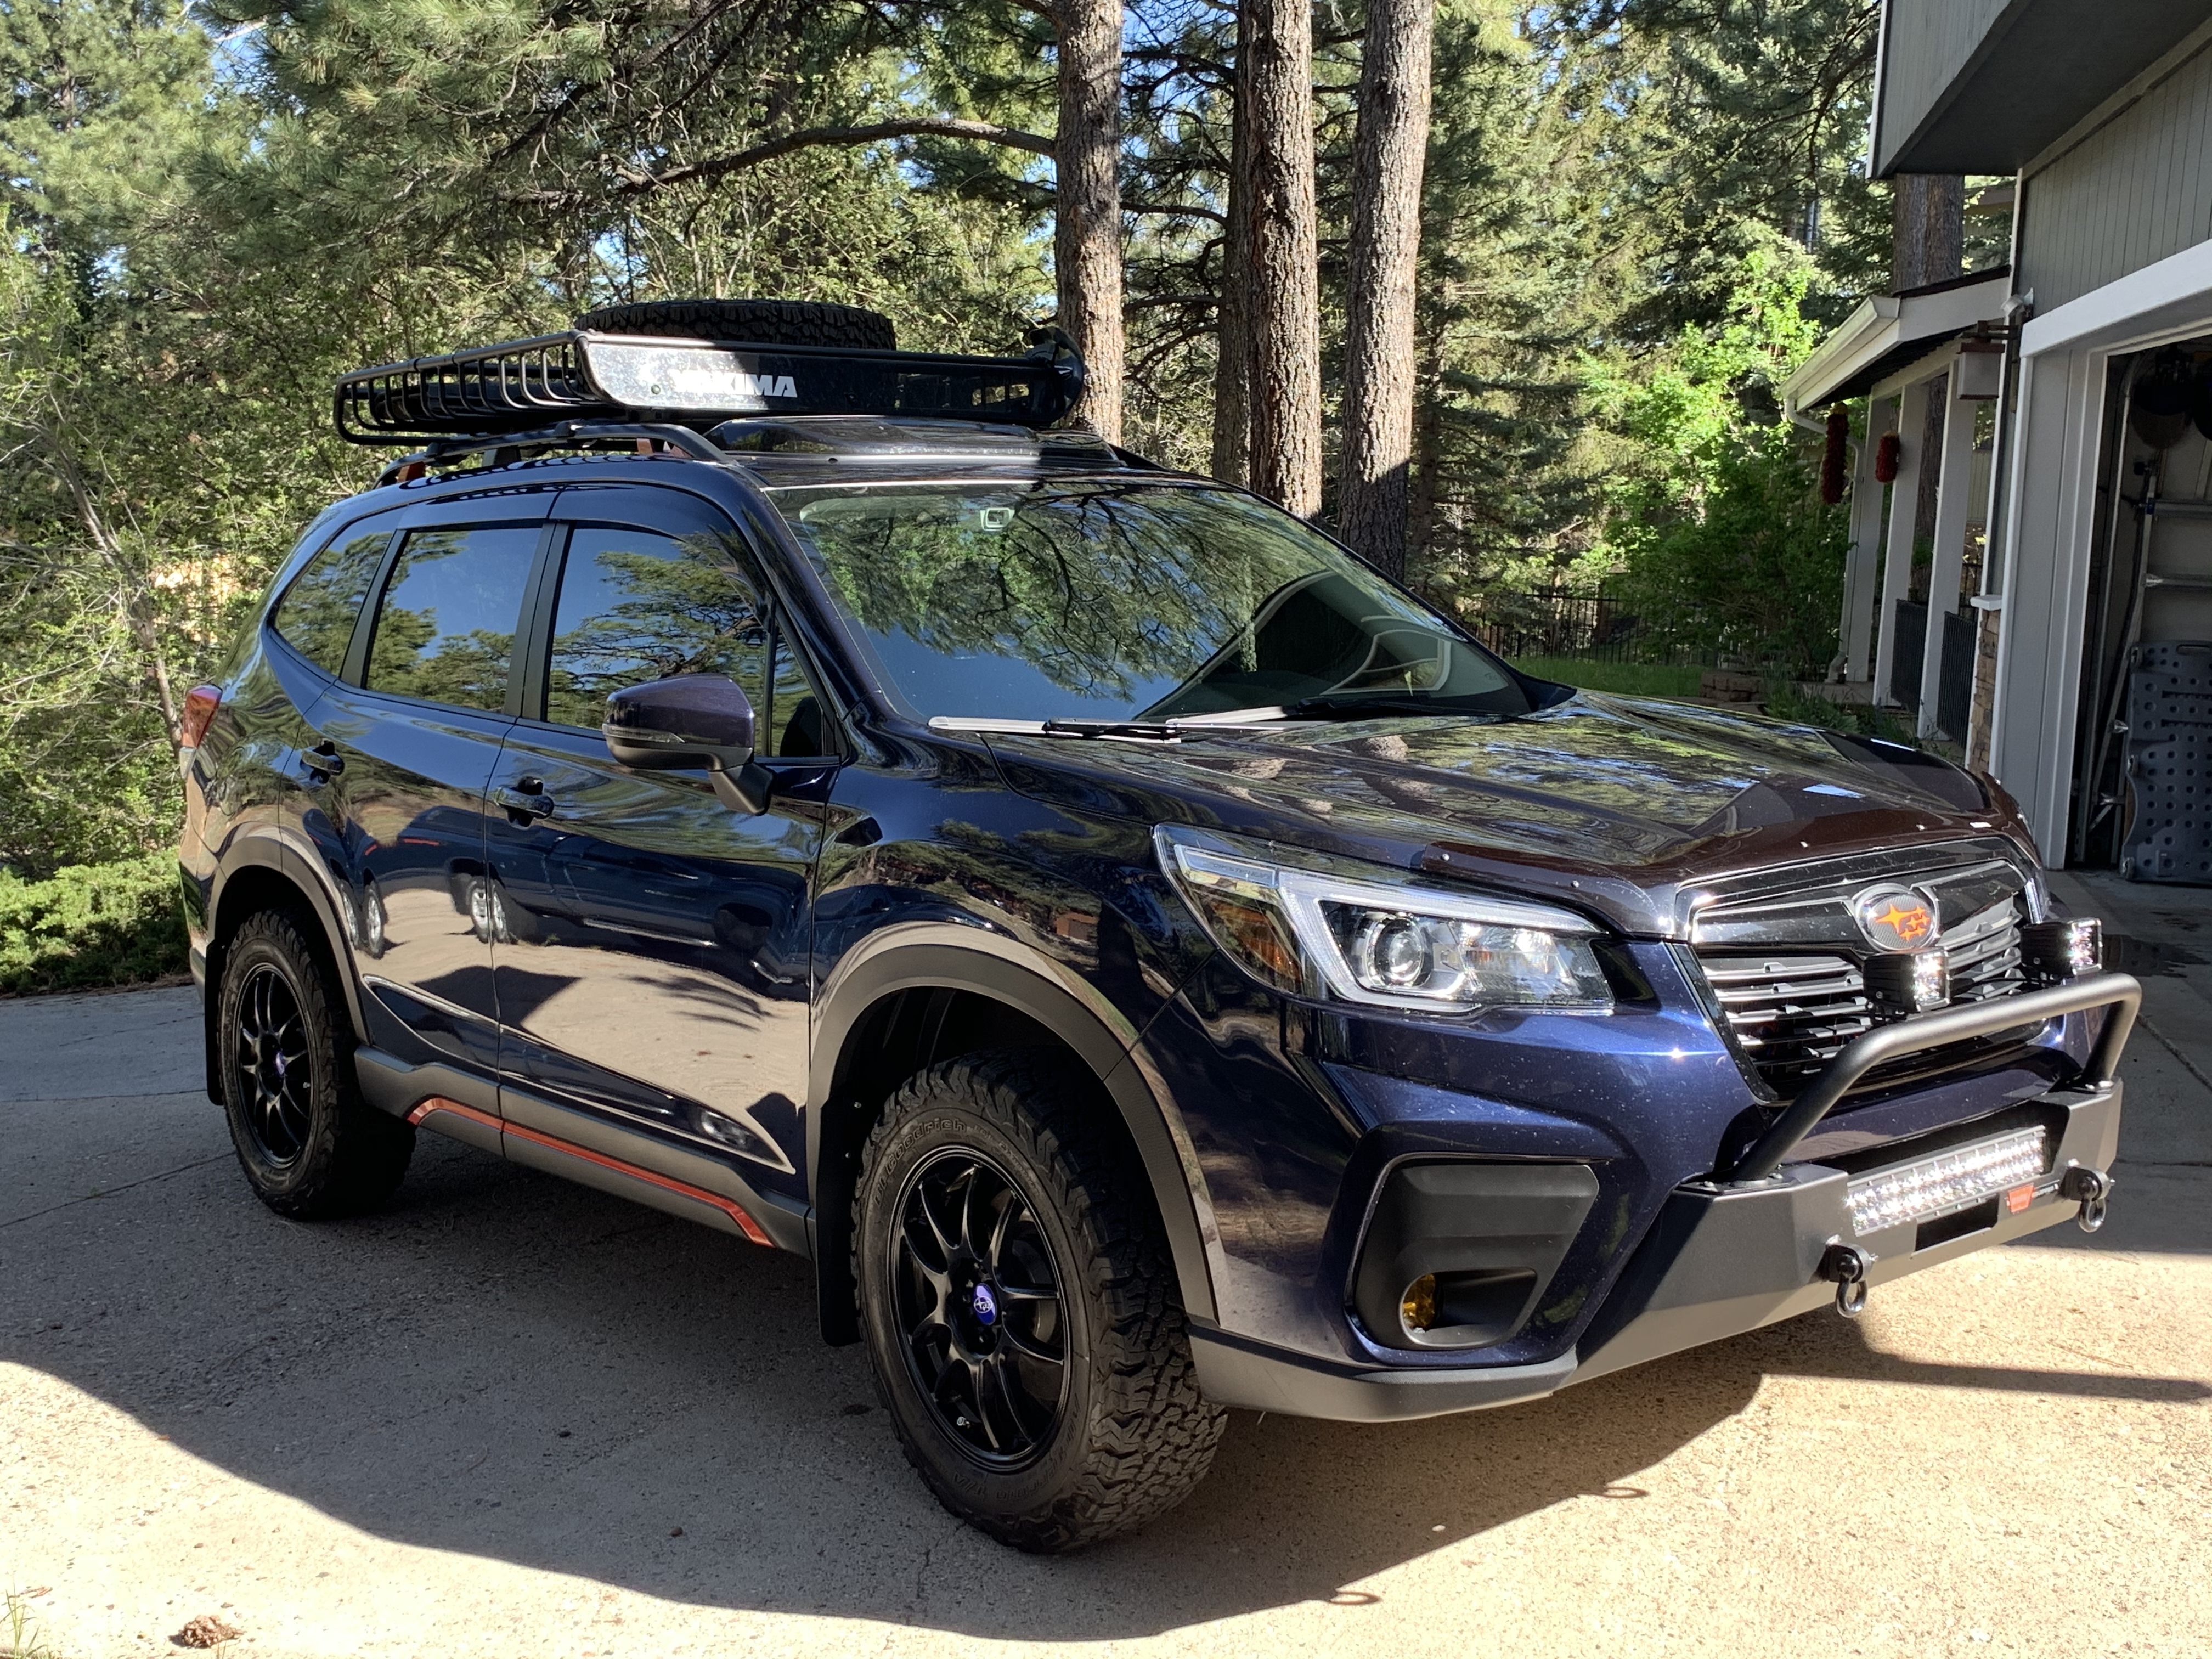 19 2019 Warn Hidden Winch Who S Getting One Subaru Forester Owners Forum